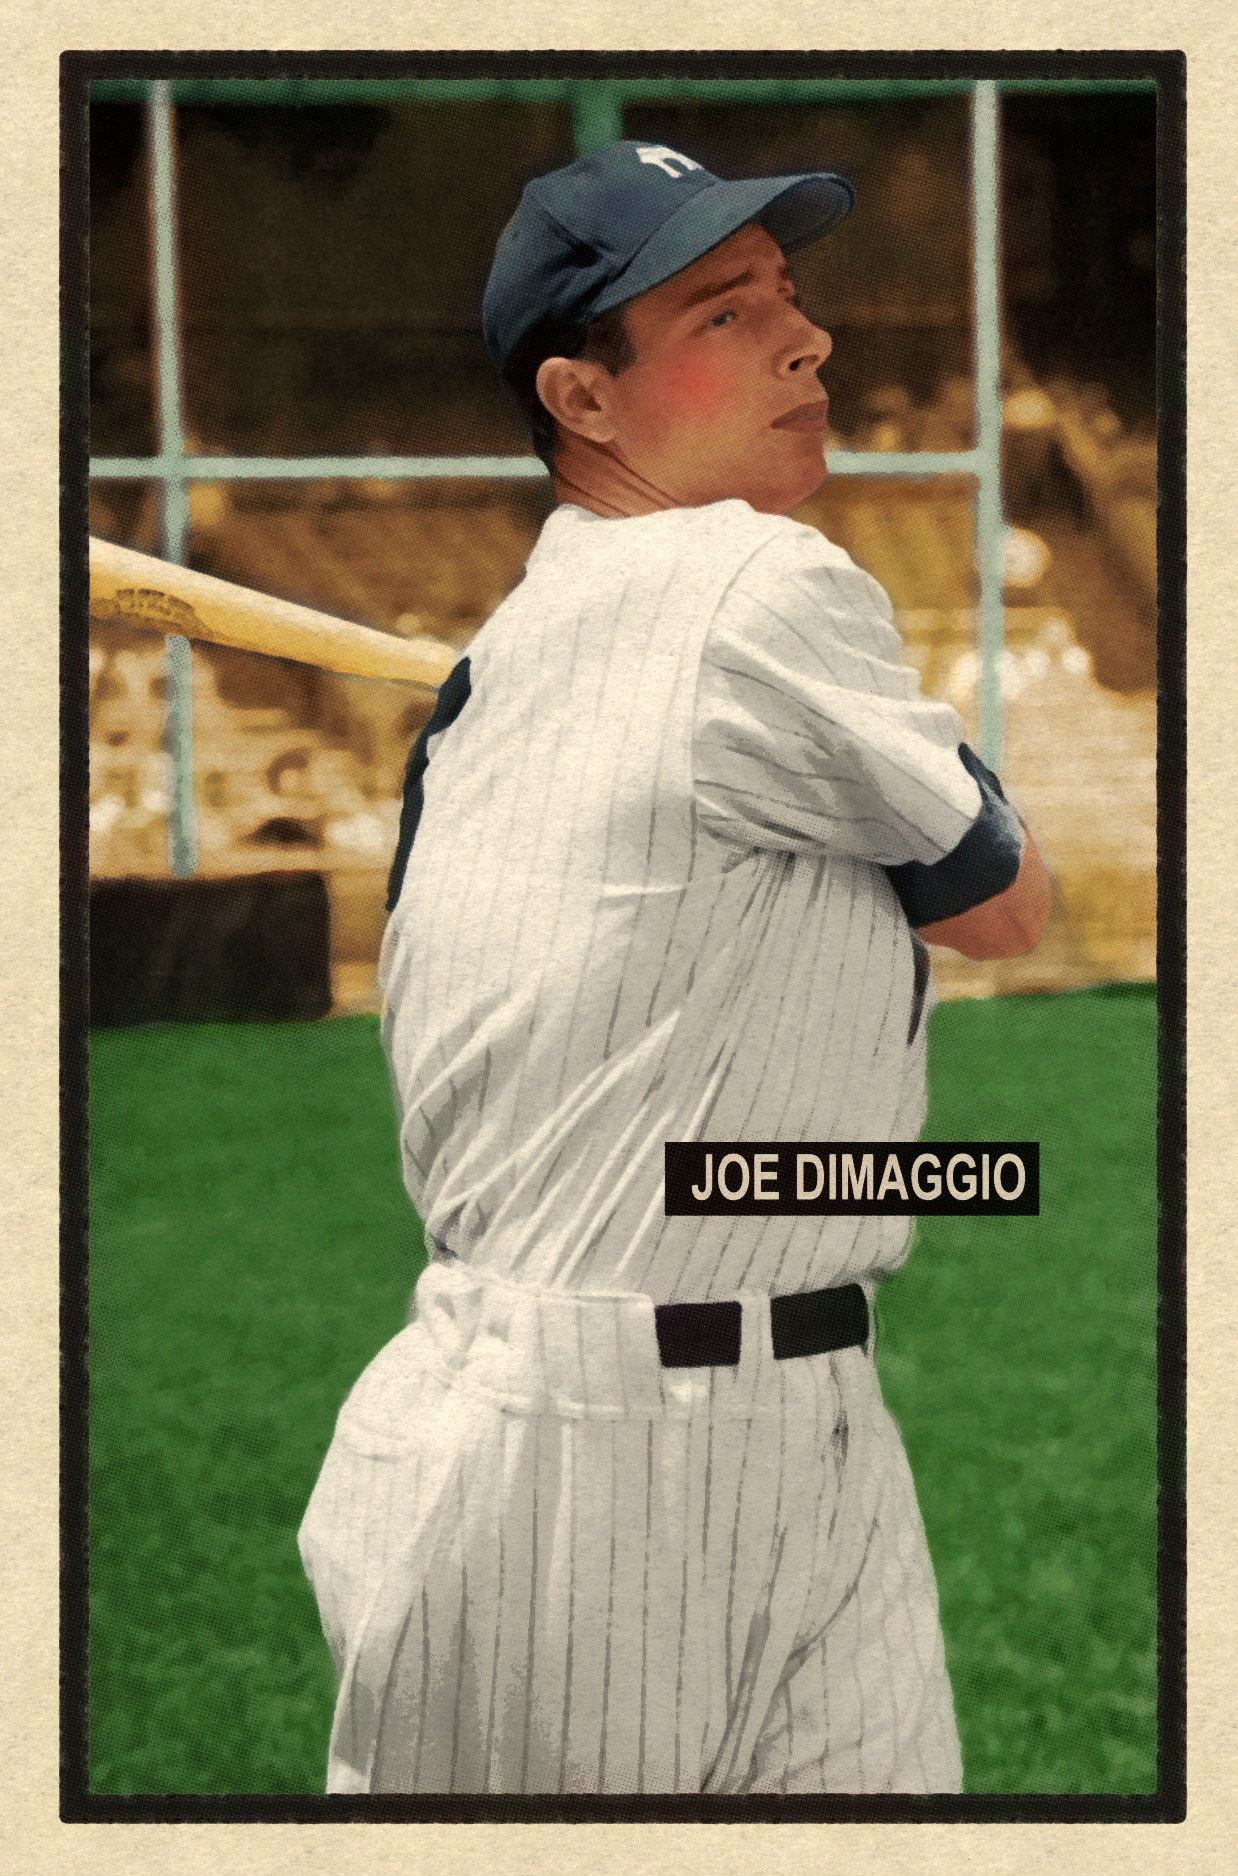 1951 BASEBALL STARS SERIES #61 JOE DiMAGGIO 3/6/17 Auction Closes at $135.50 USD - Current Poulation of 2